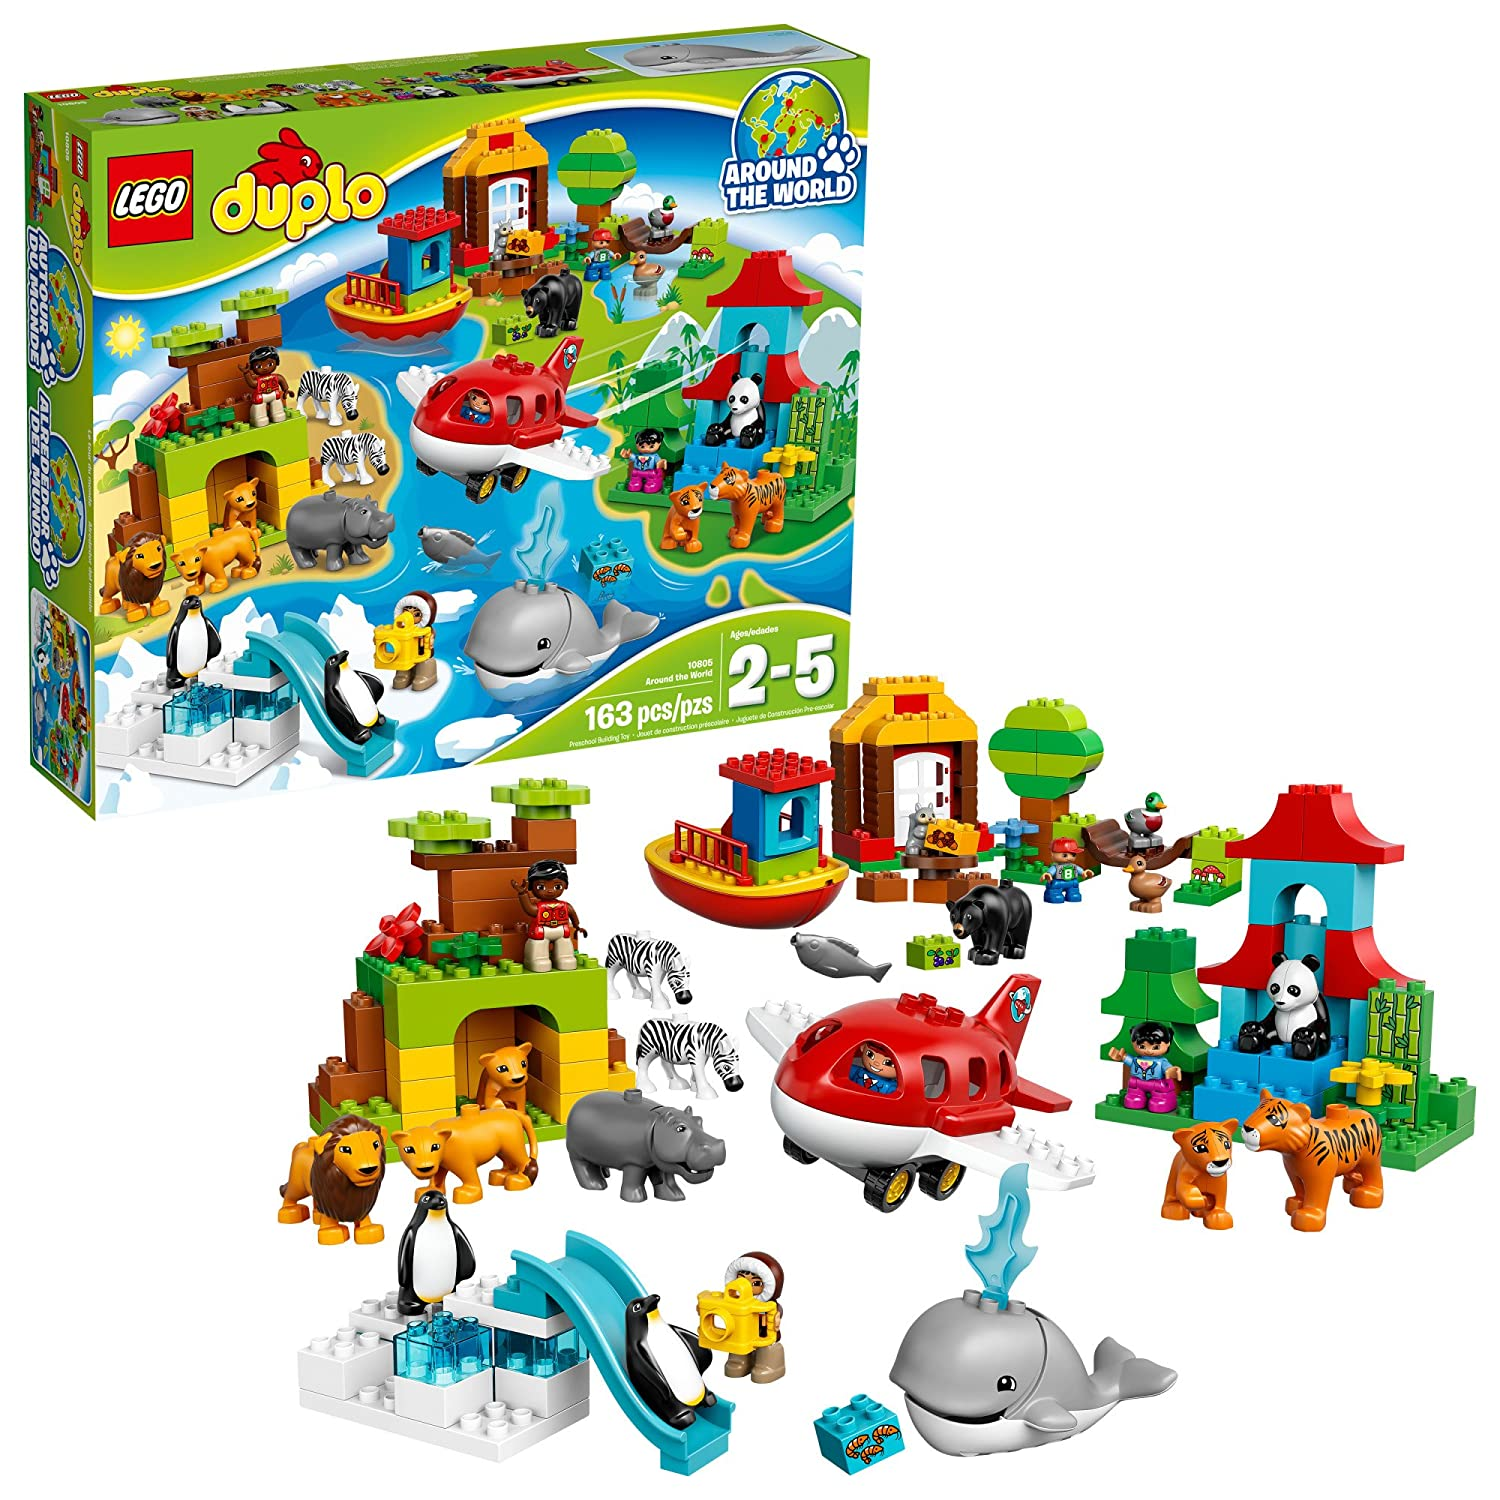 LEGO DUPLO Around The World 10805 (Amazon Exclusive) 6137881